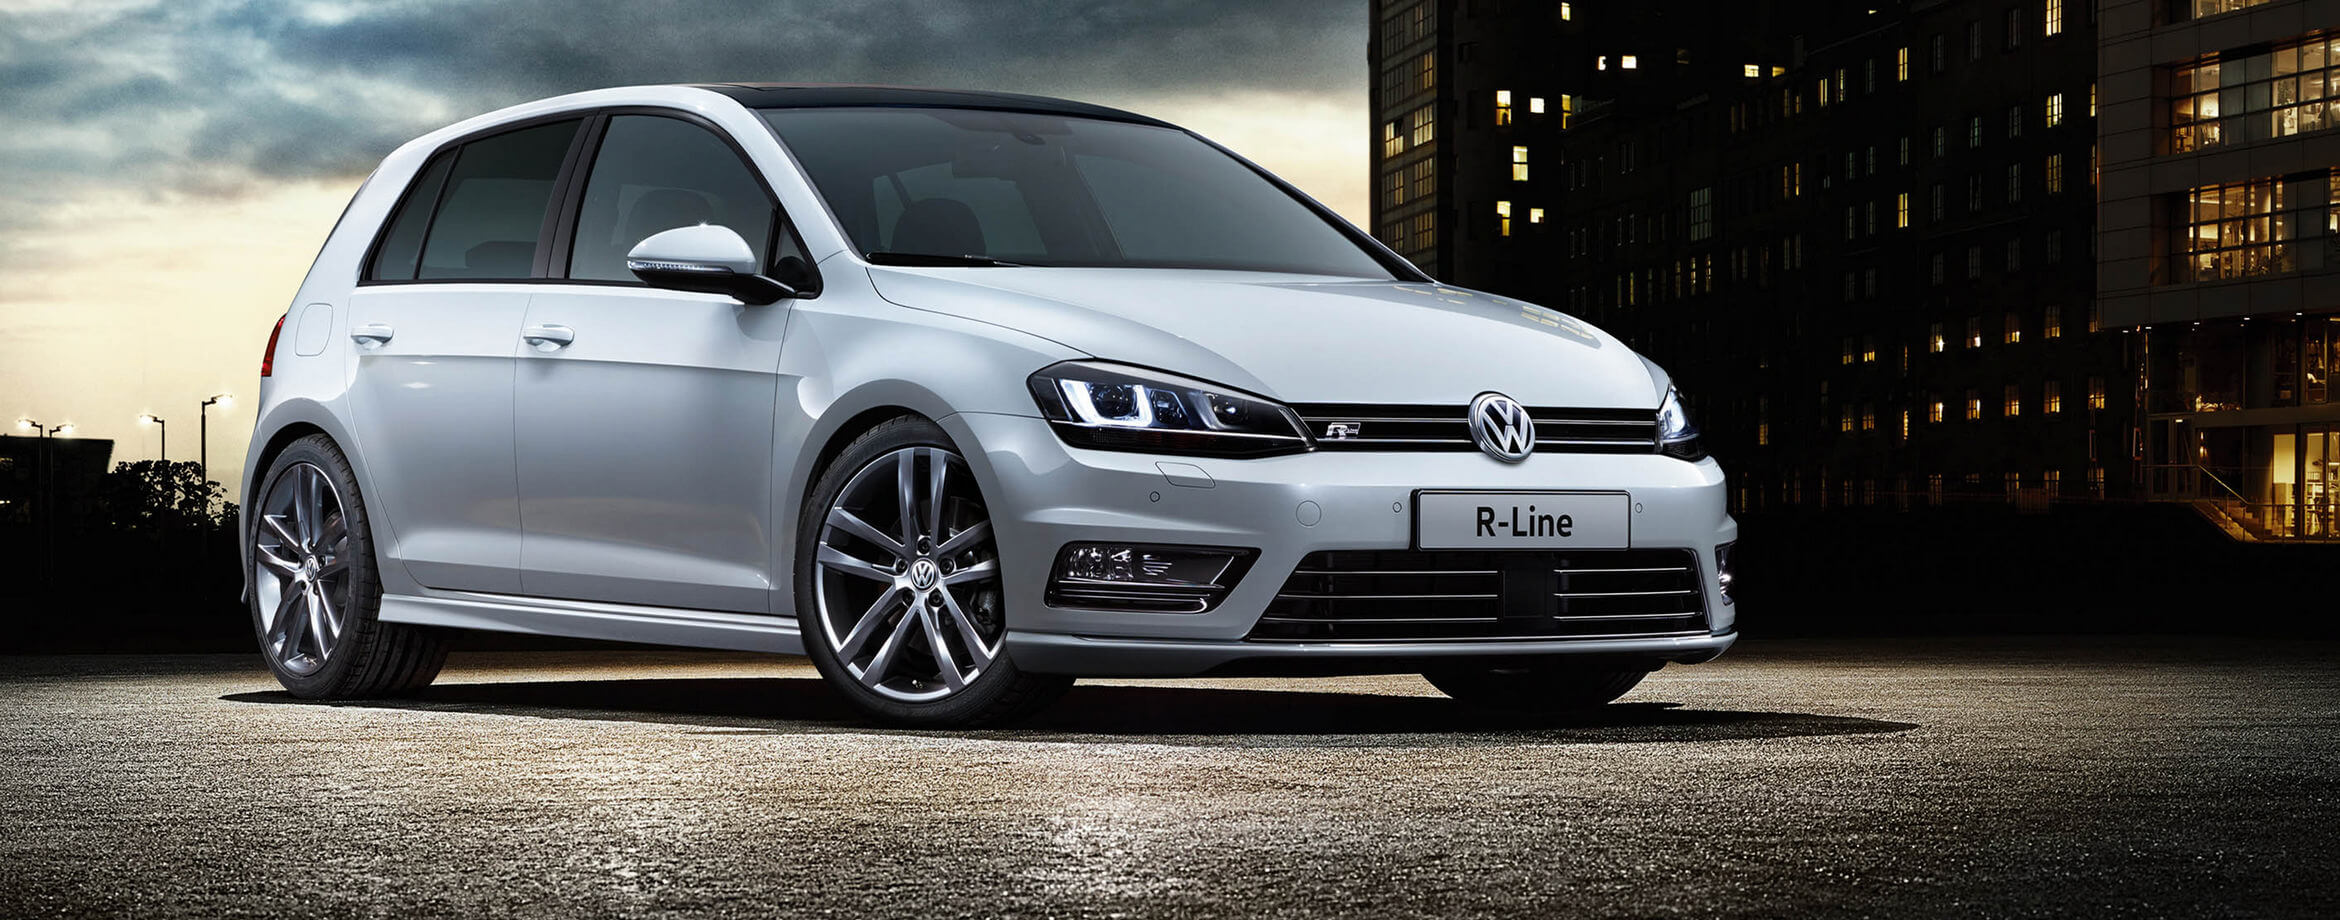 on in liter volkswagen us tsi launches news jetta new the models replaces